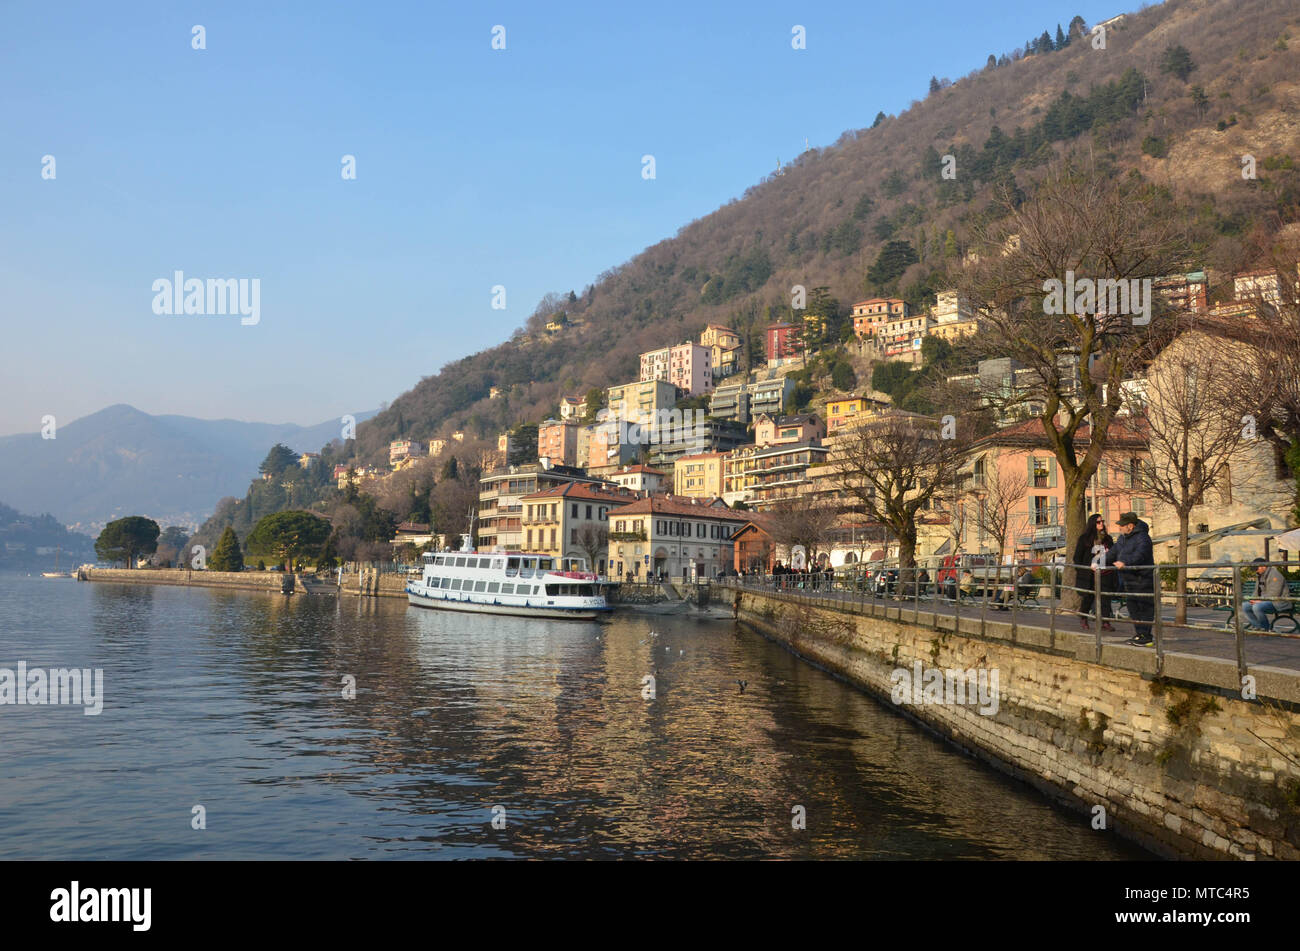 The waterfront of the city of Como (Lungo Lario Trieste), Como, Lake Como, Lombardy, Italy, January 2018 - Stock Image